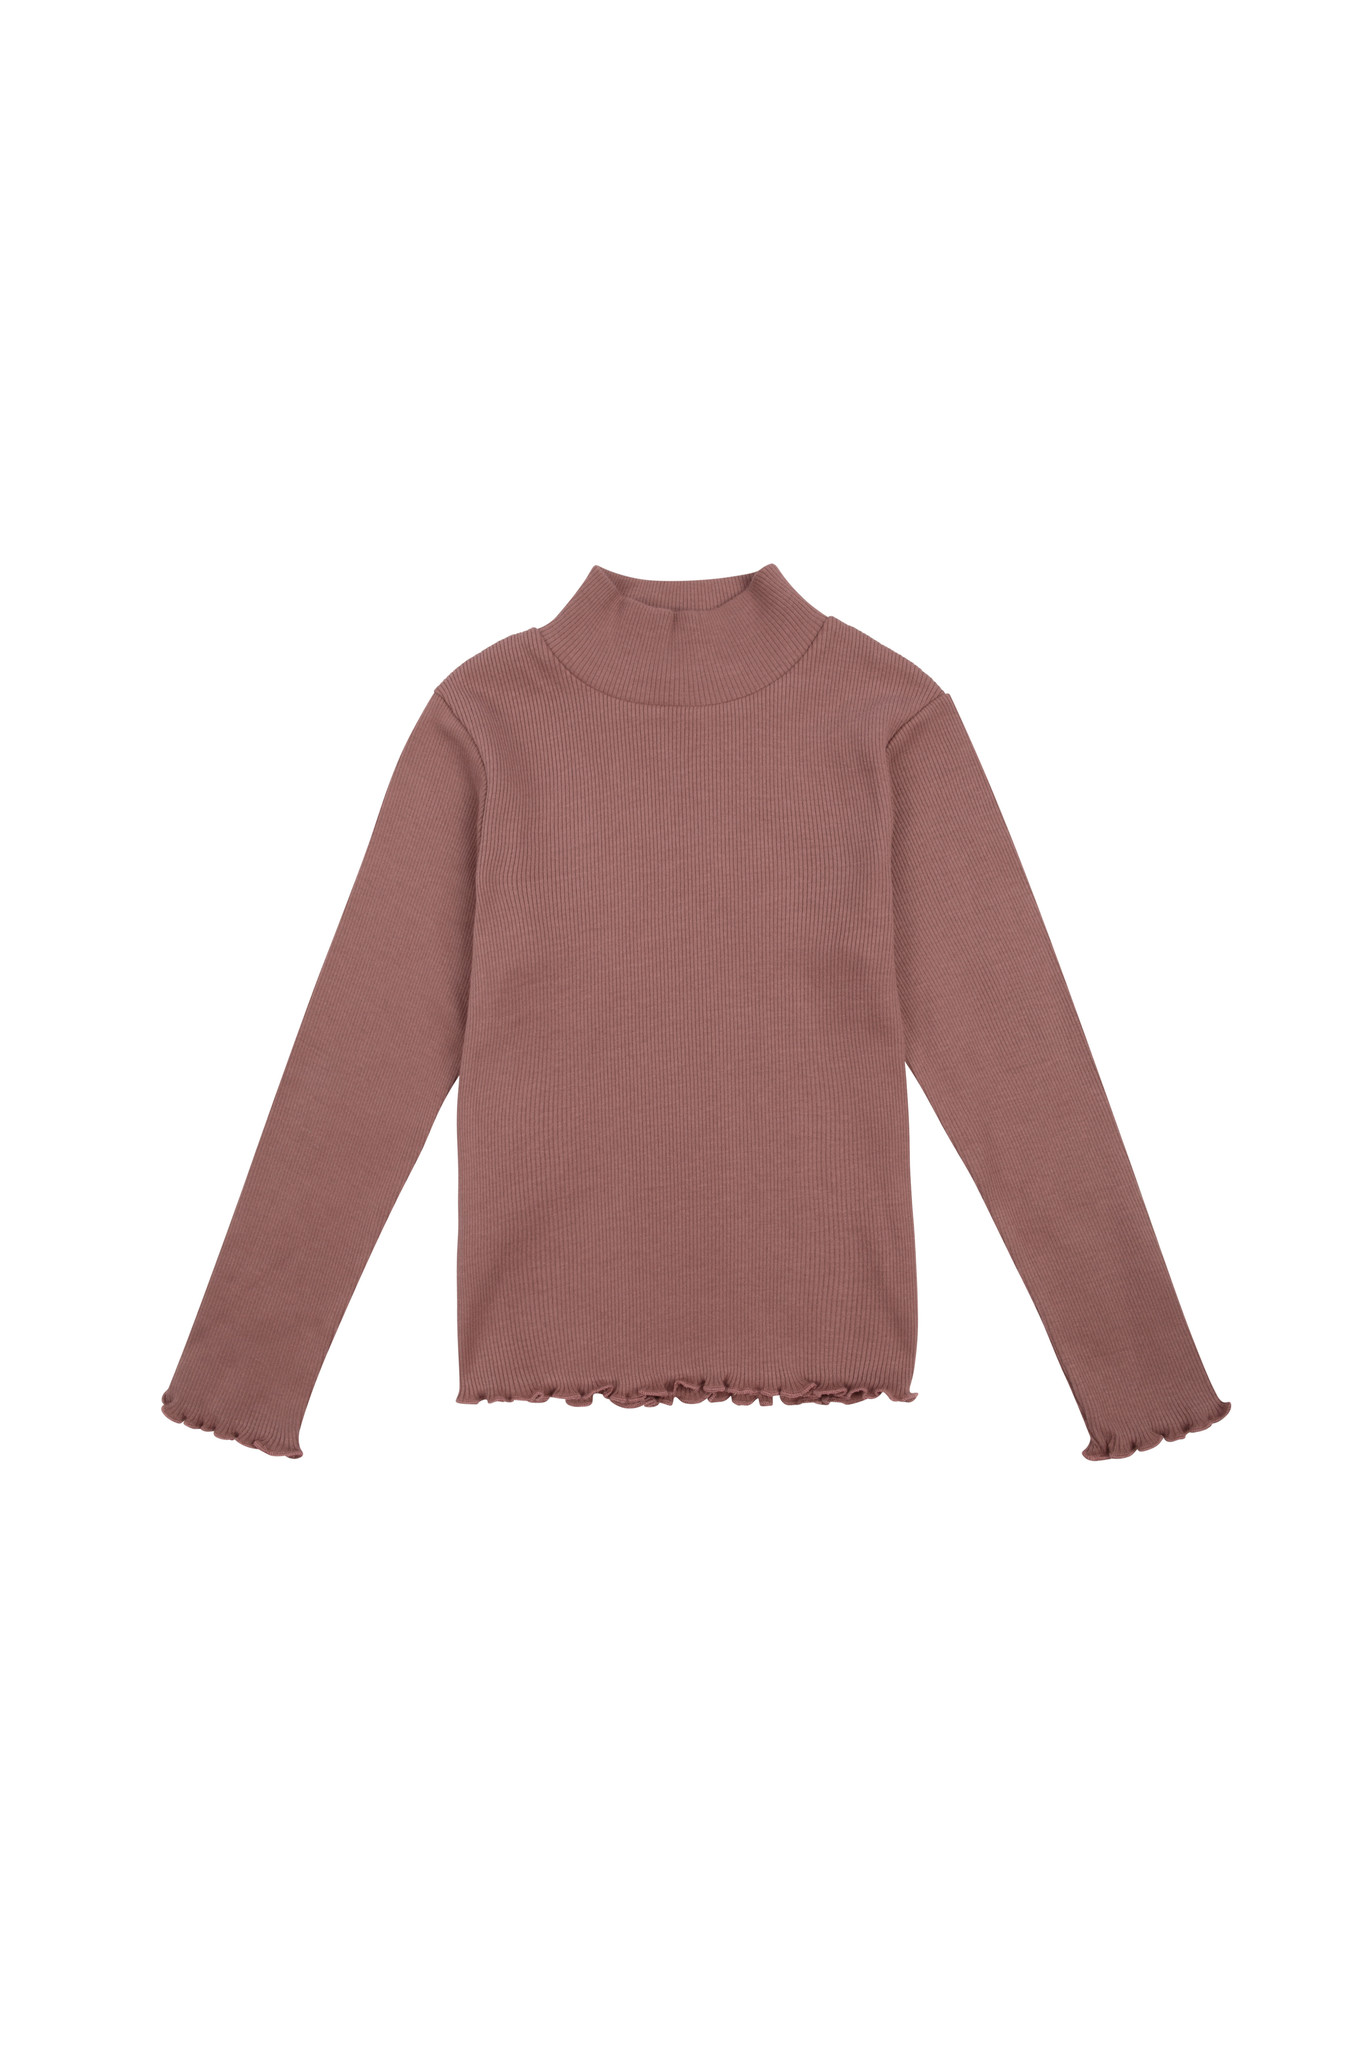 Betsy high neck - Rose Taupe-1